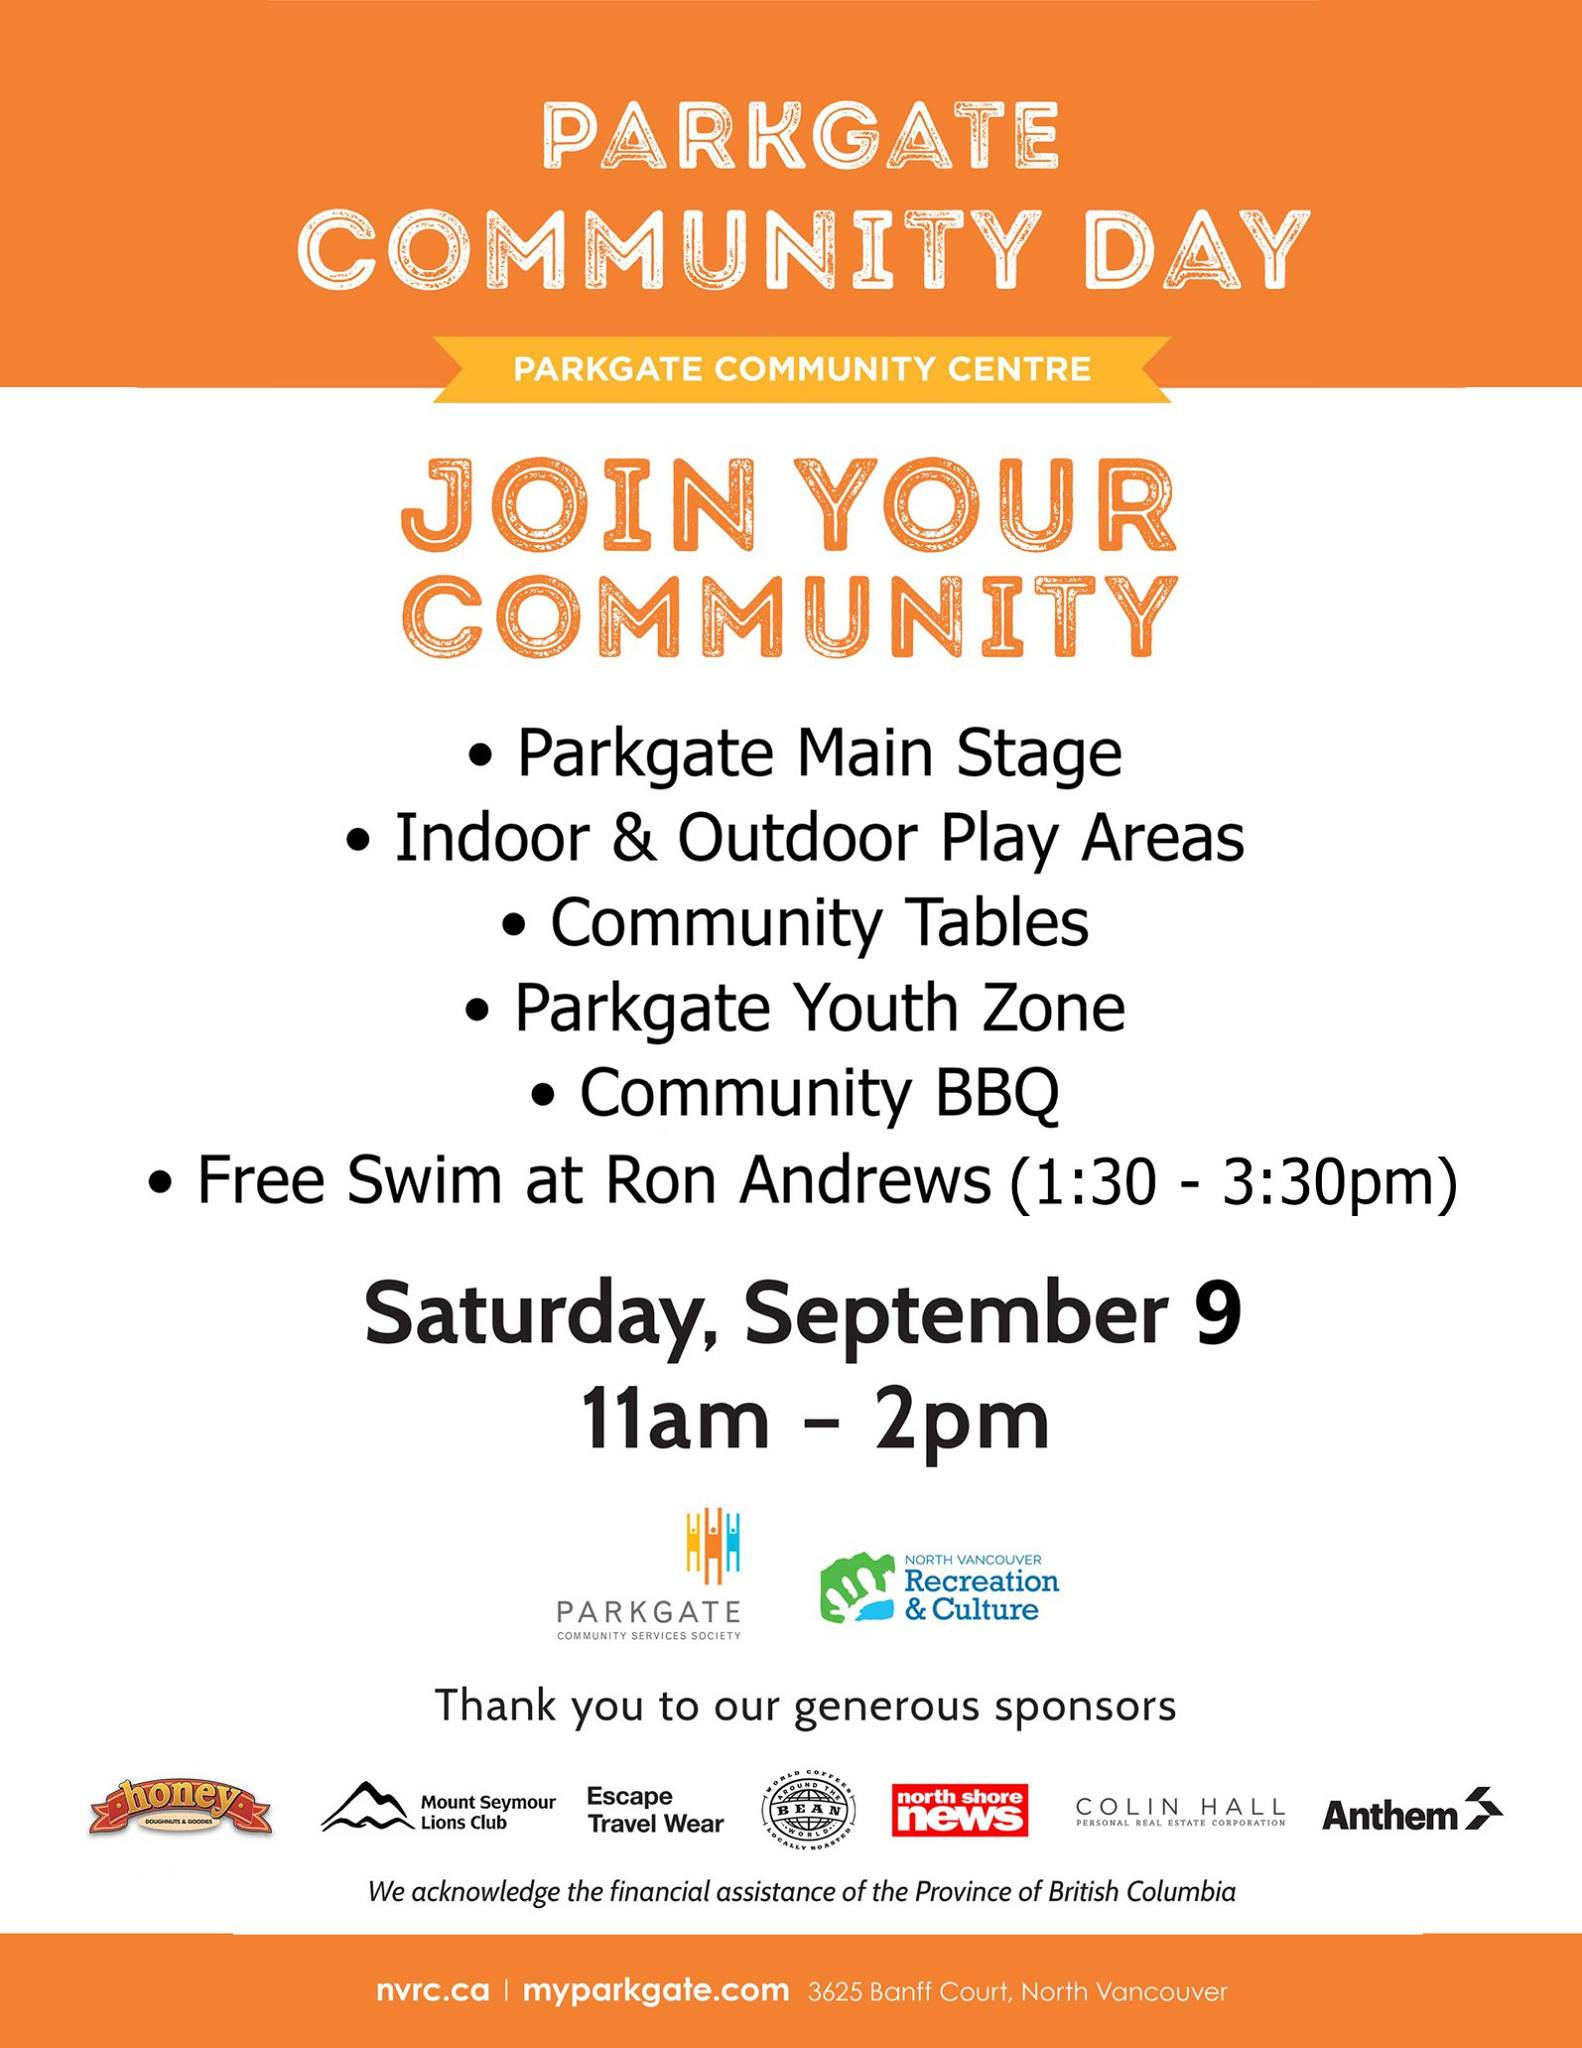 Parkgate Community Day Saturday Sept 9th